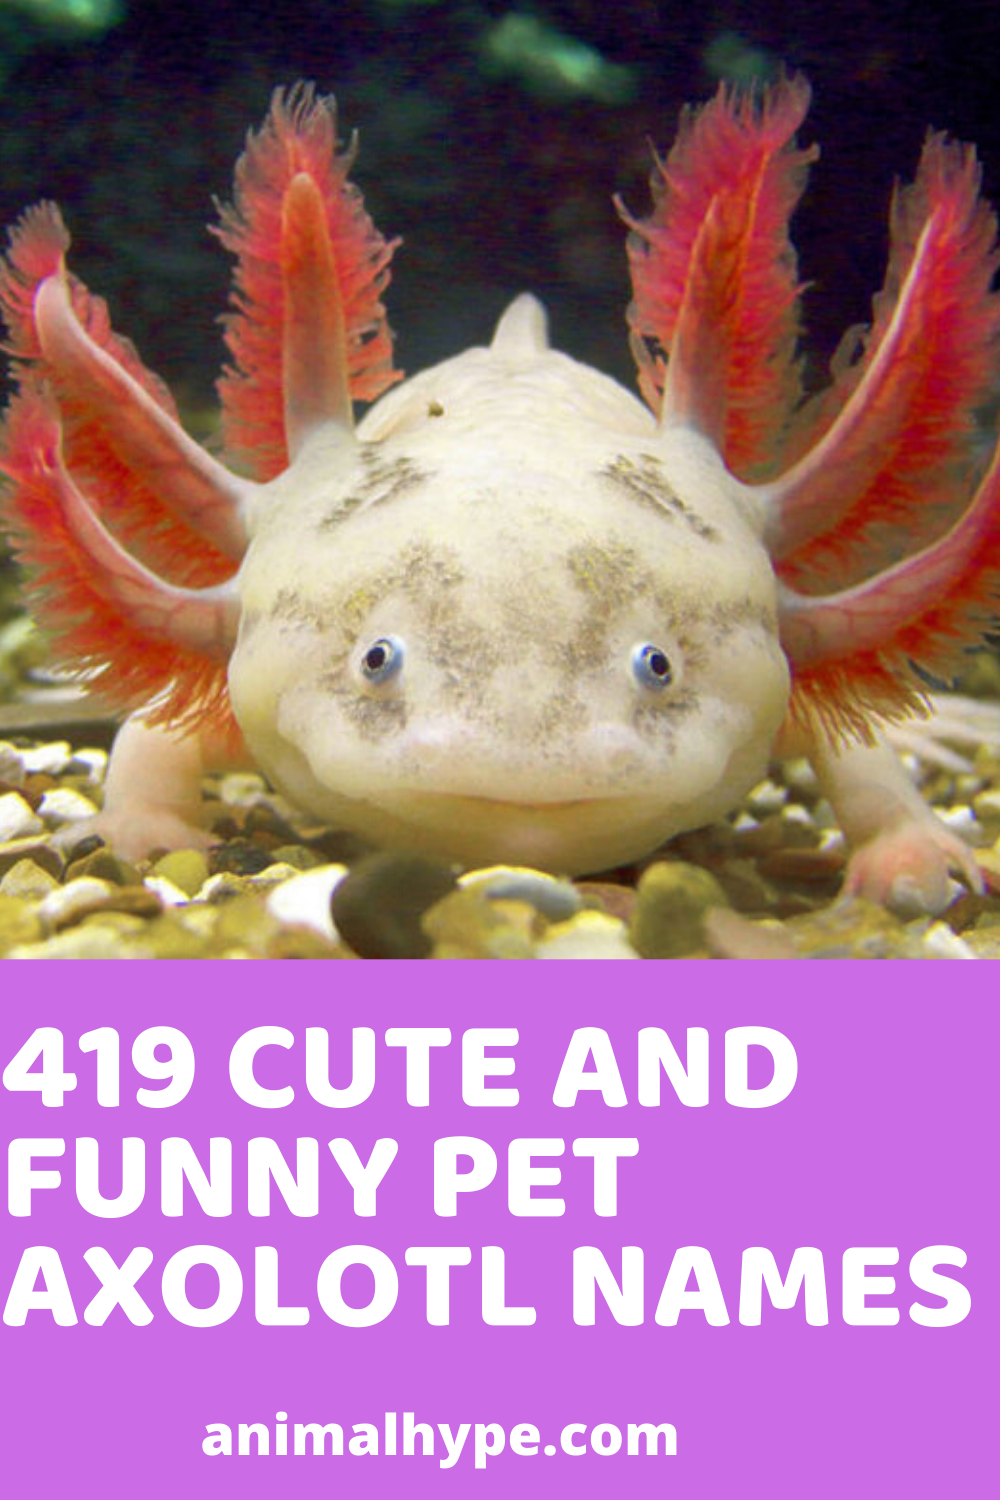 419 Cute and Funny Axolotl Names in 2020 Pets, Funny animals